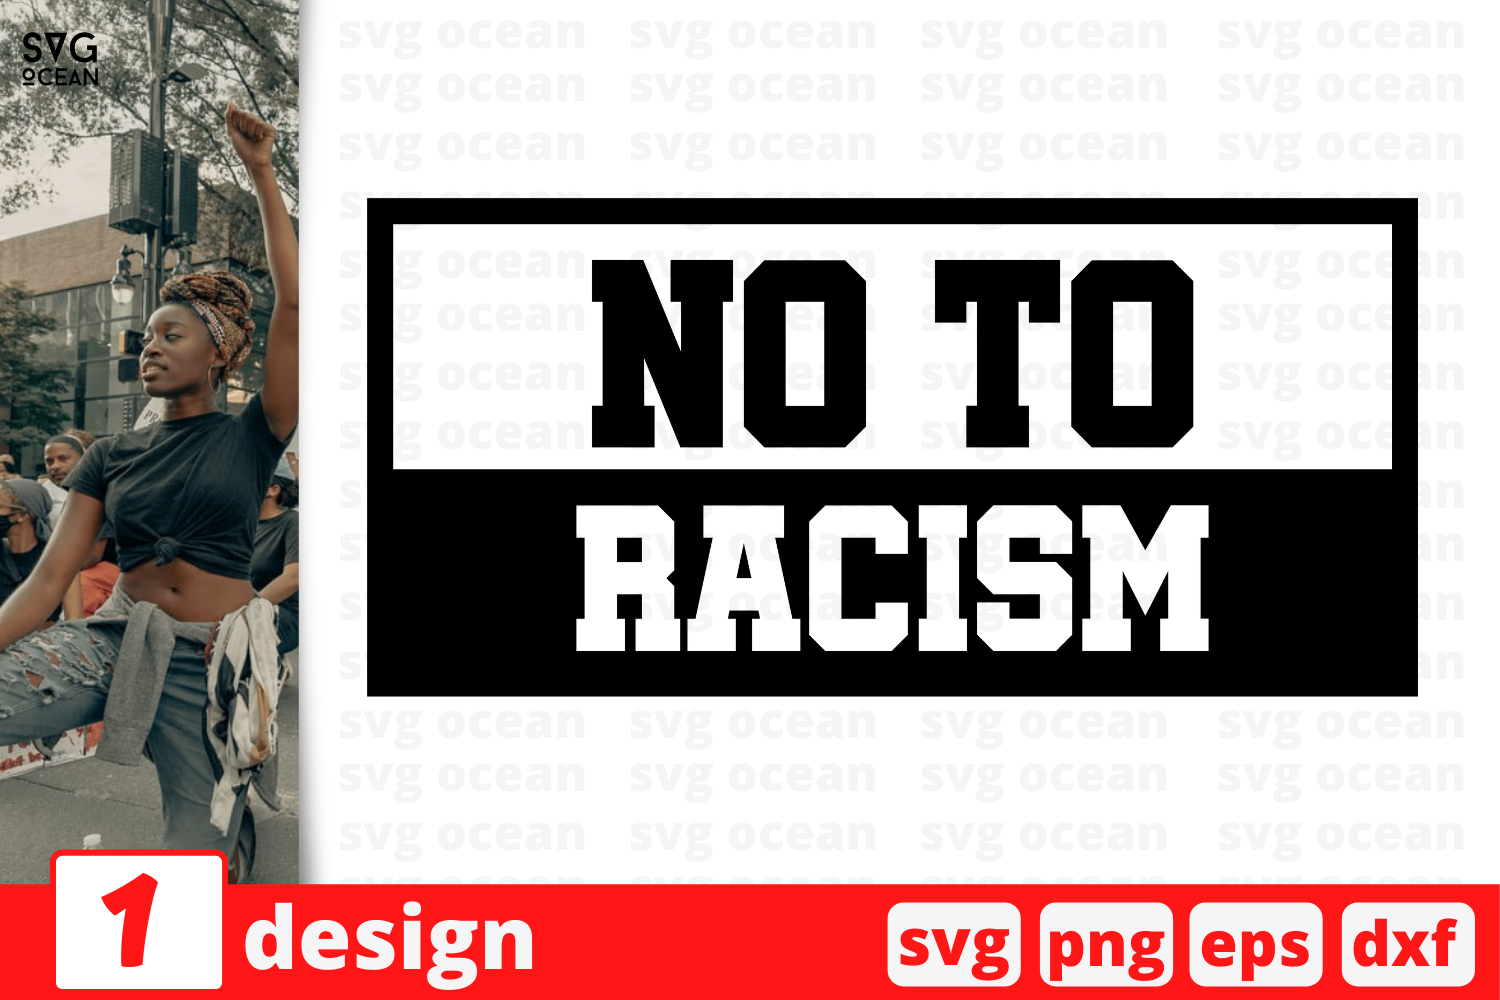 Download Free No To Racism Graphic By Svgocean Creative Fabrica for Cricut Explore, Silhouette and other cutting machines.